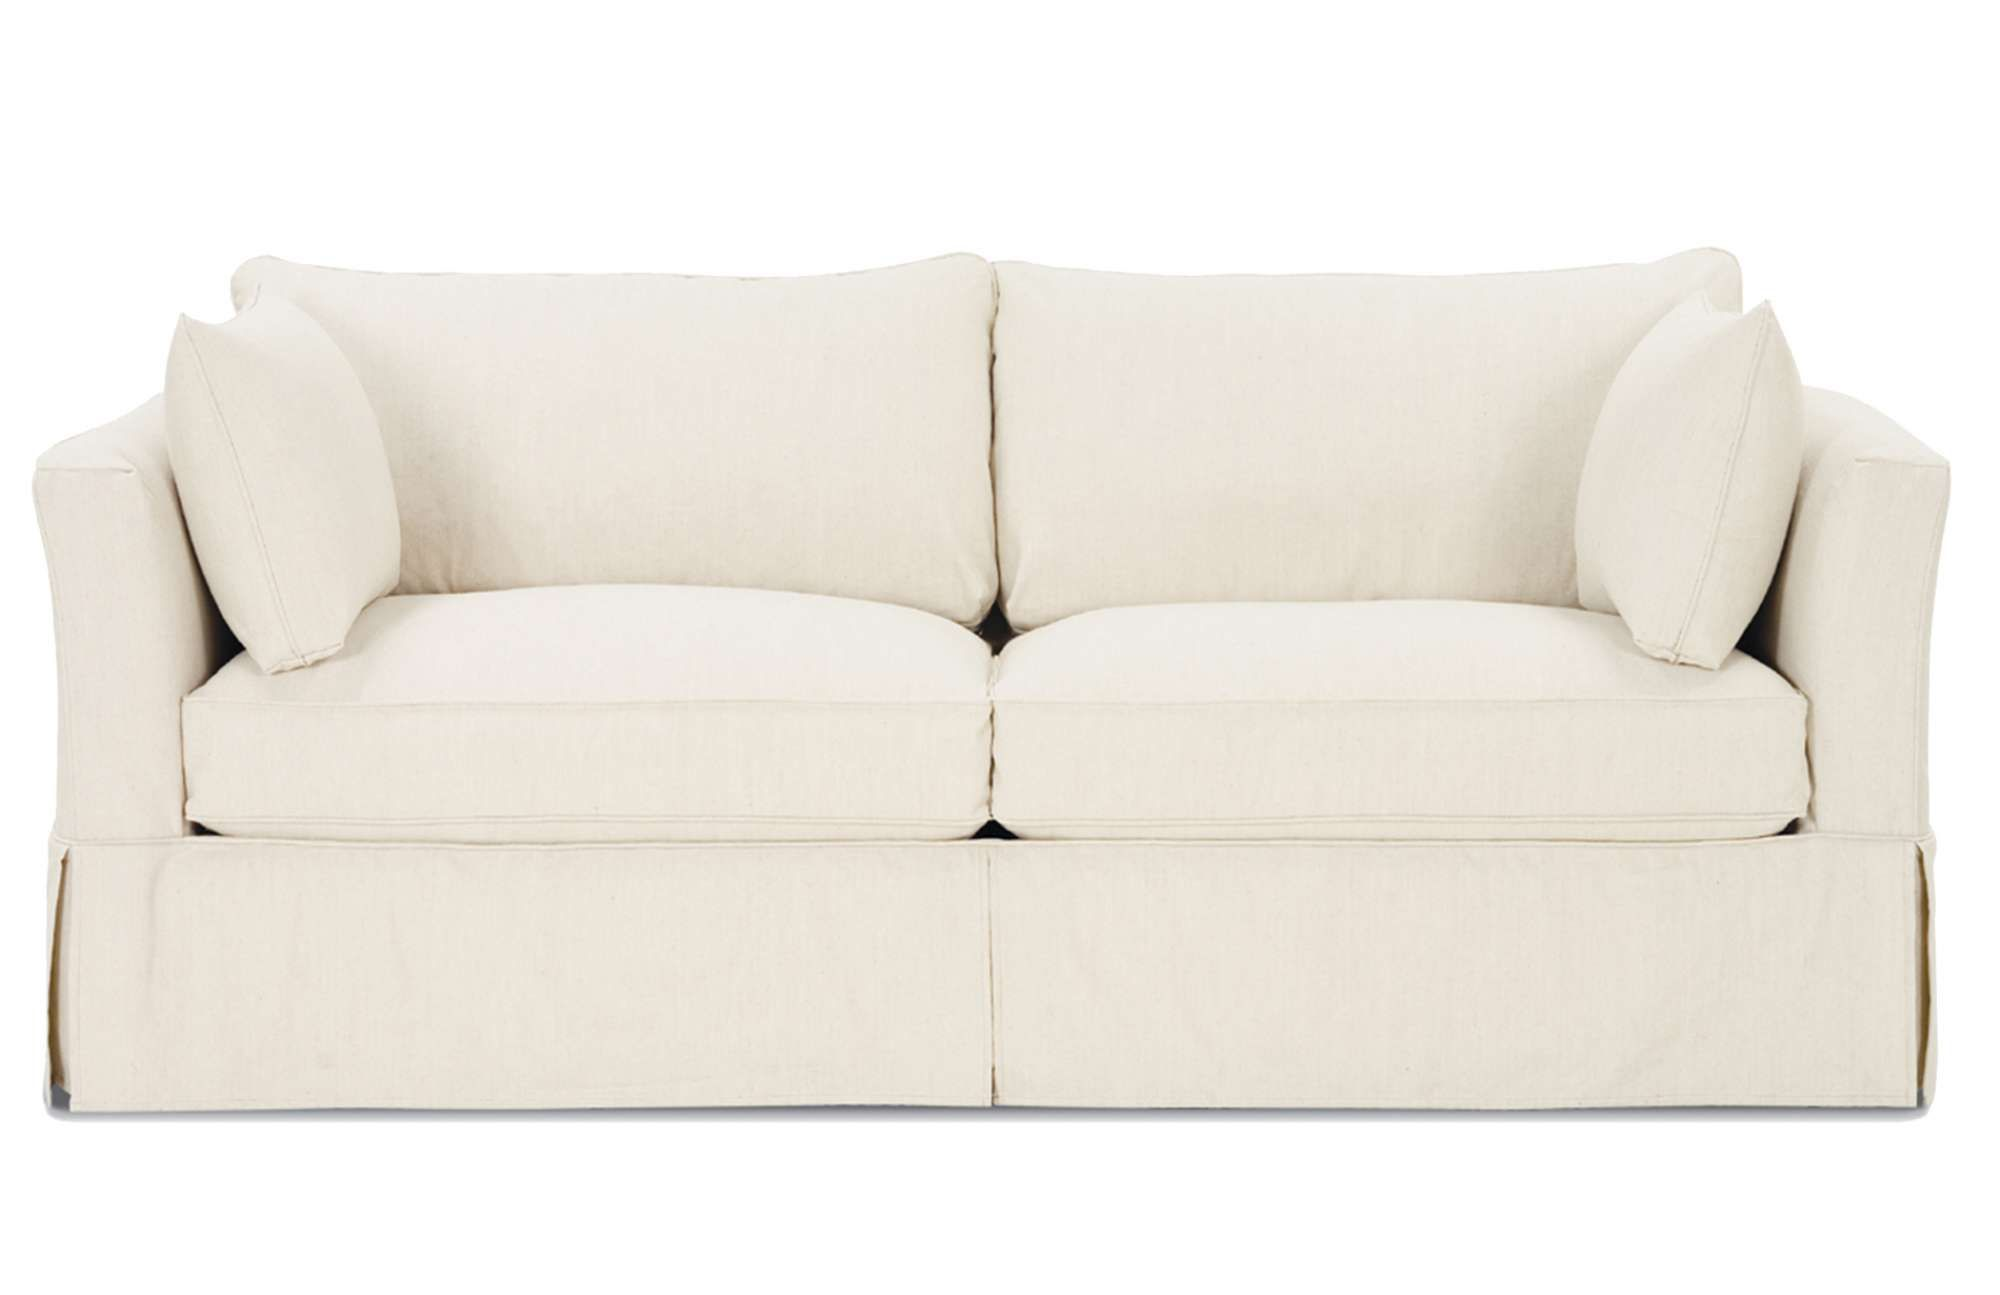 The Mitchell Sofa bines elegance with modern style to create an